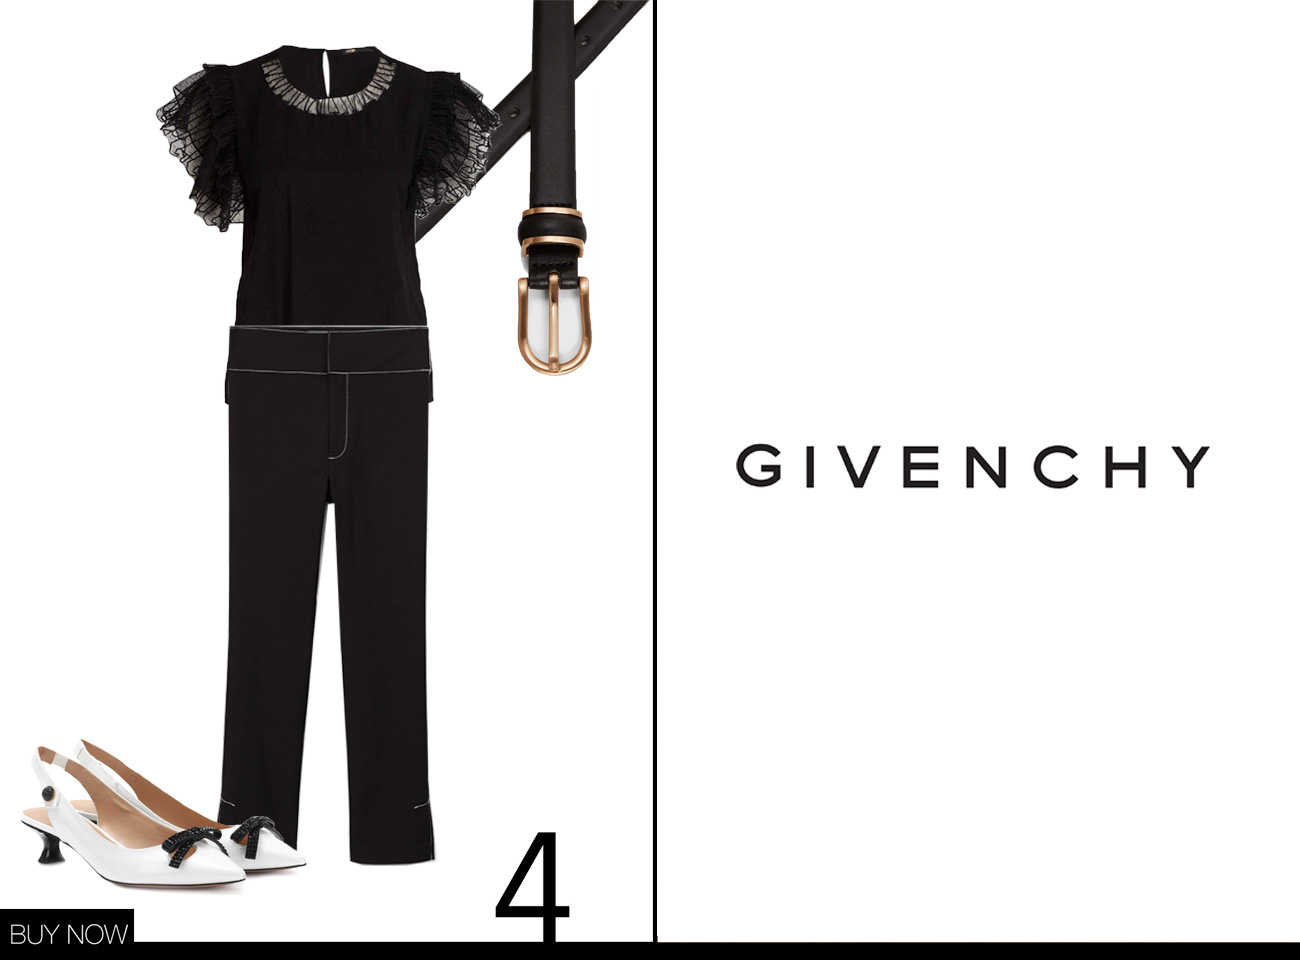 Givenchy Herbst Winter Kollektion 18/19 nachgestylt